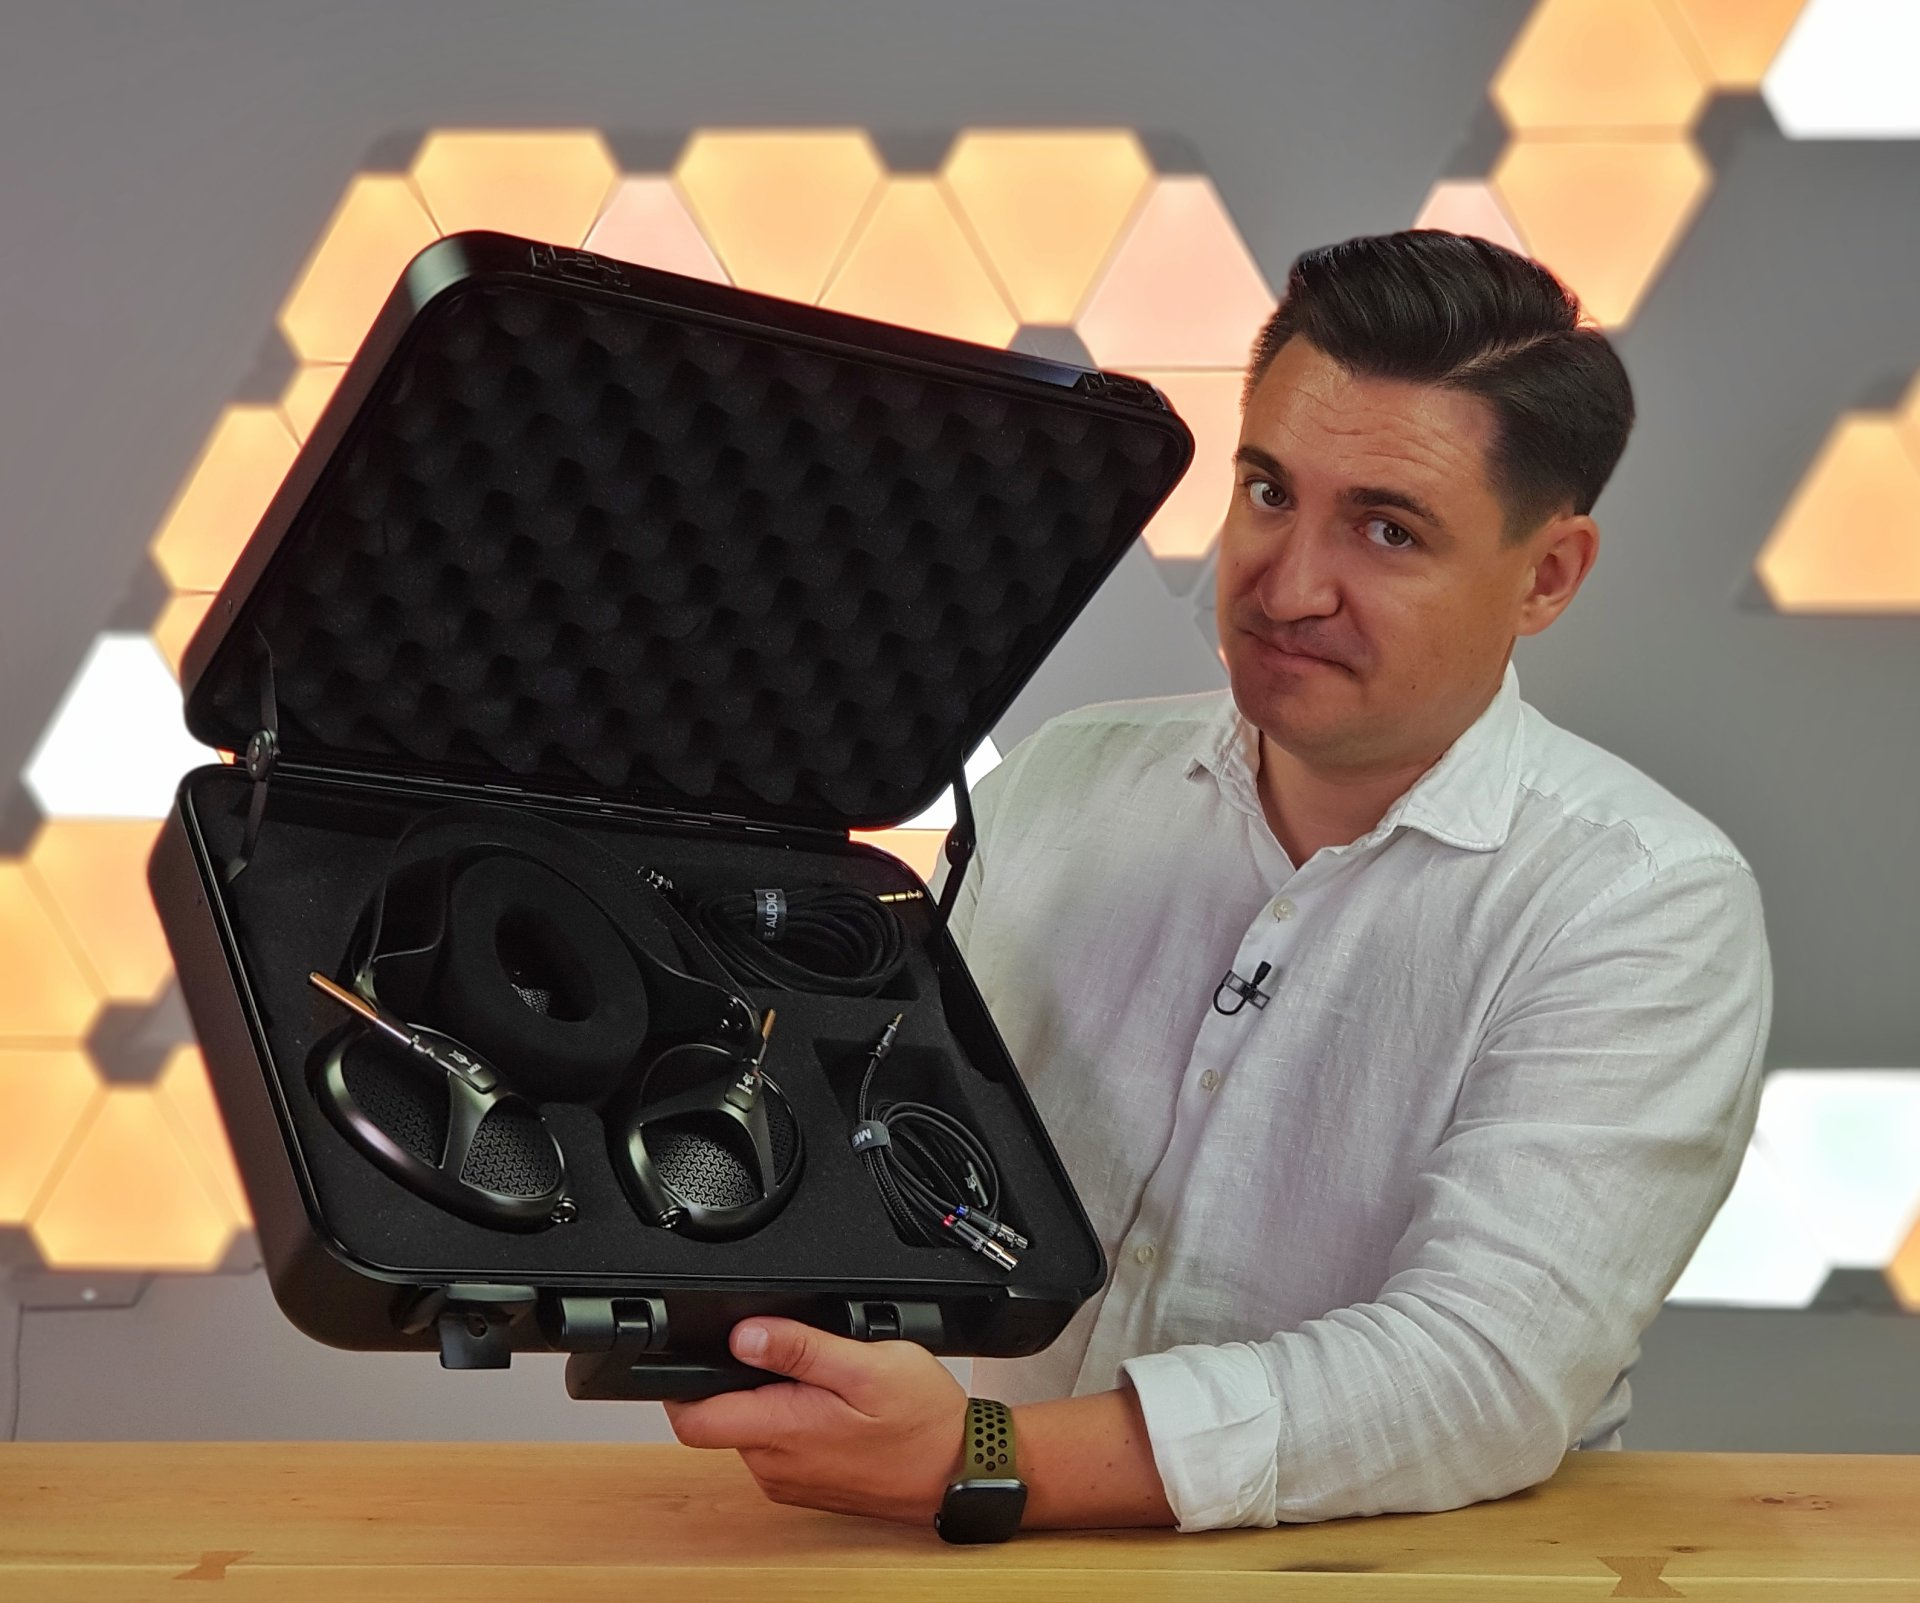 https://buhnici.ro/alienware-m15-un-laptop-adevarat-de-gaming-unboxing-review/